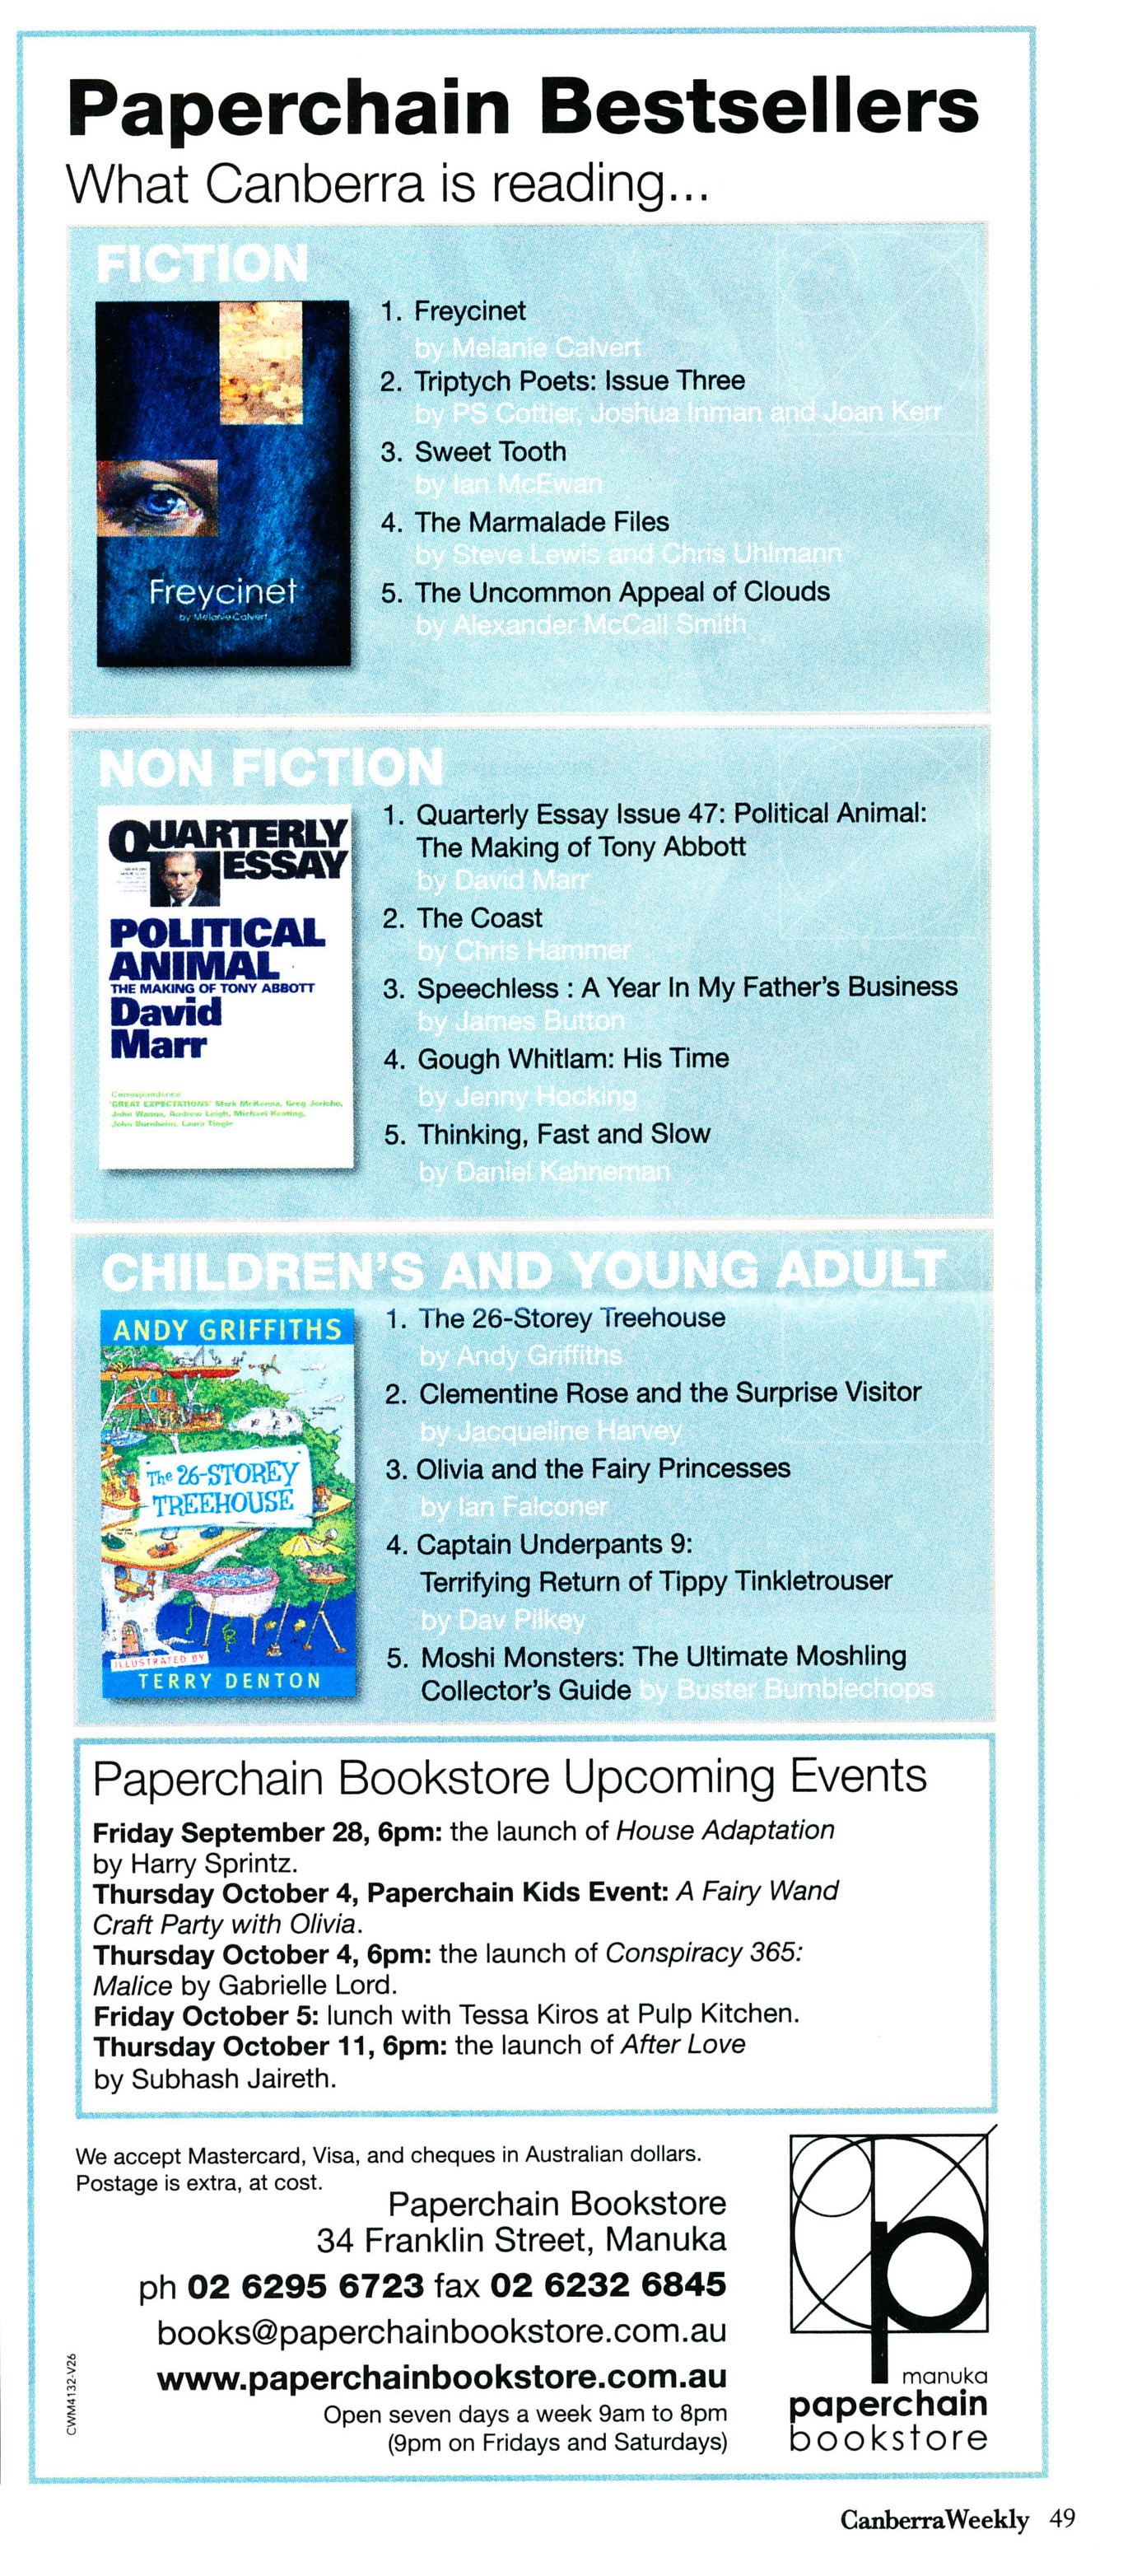 Paperchain Bestsellers list